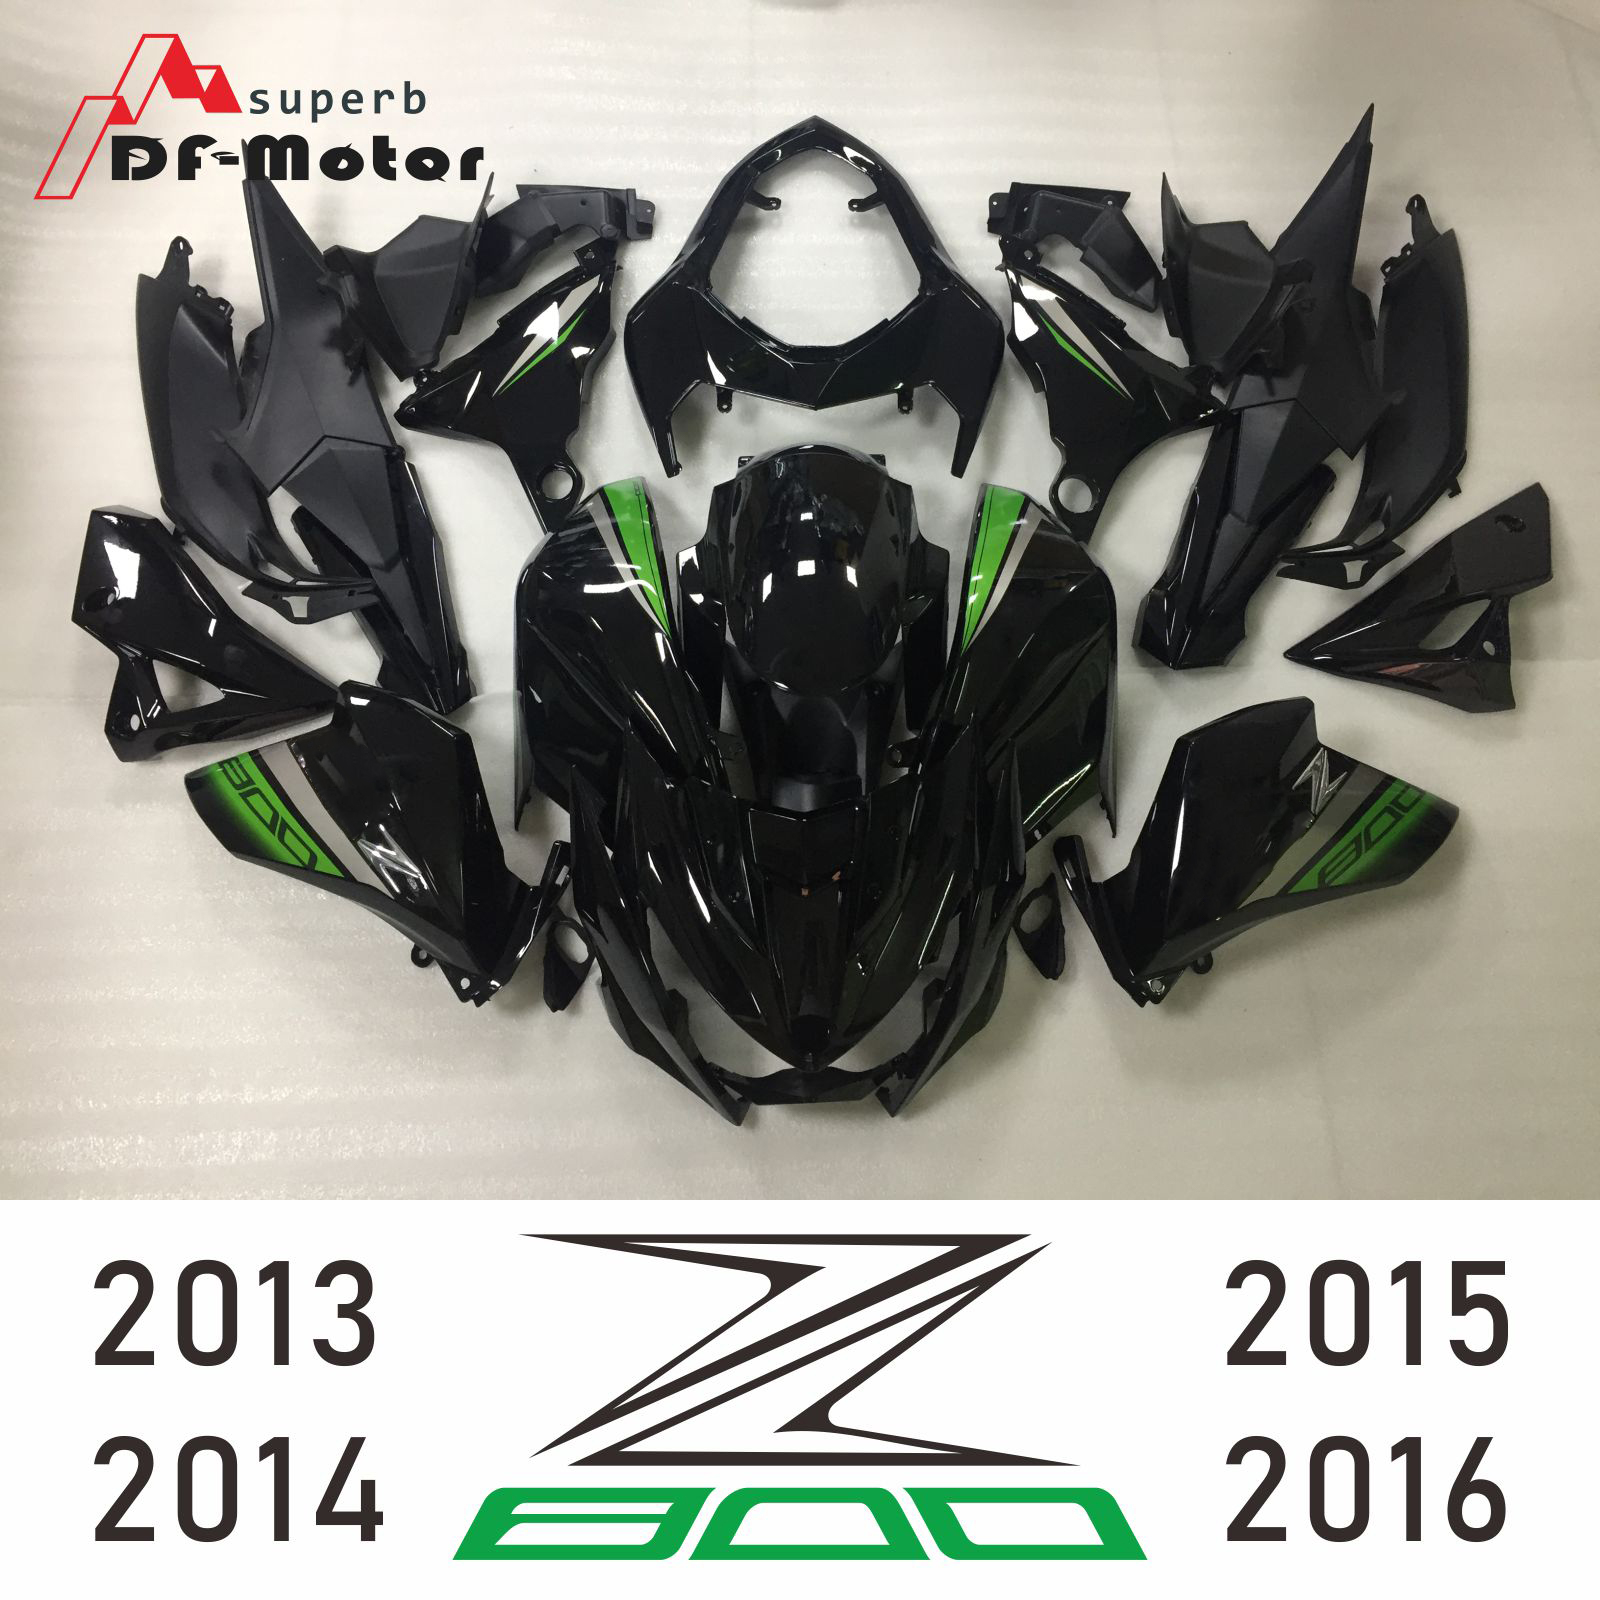 Full High Quality ABS Injection Plastics Fairings Kit For Kawasaki Z800 2013 2016 13 14 15 16 Customized Gloss Black Green New in Full Fairing Kits from Automobiles Motorcycles